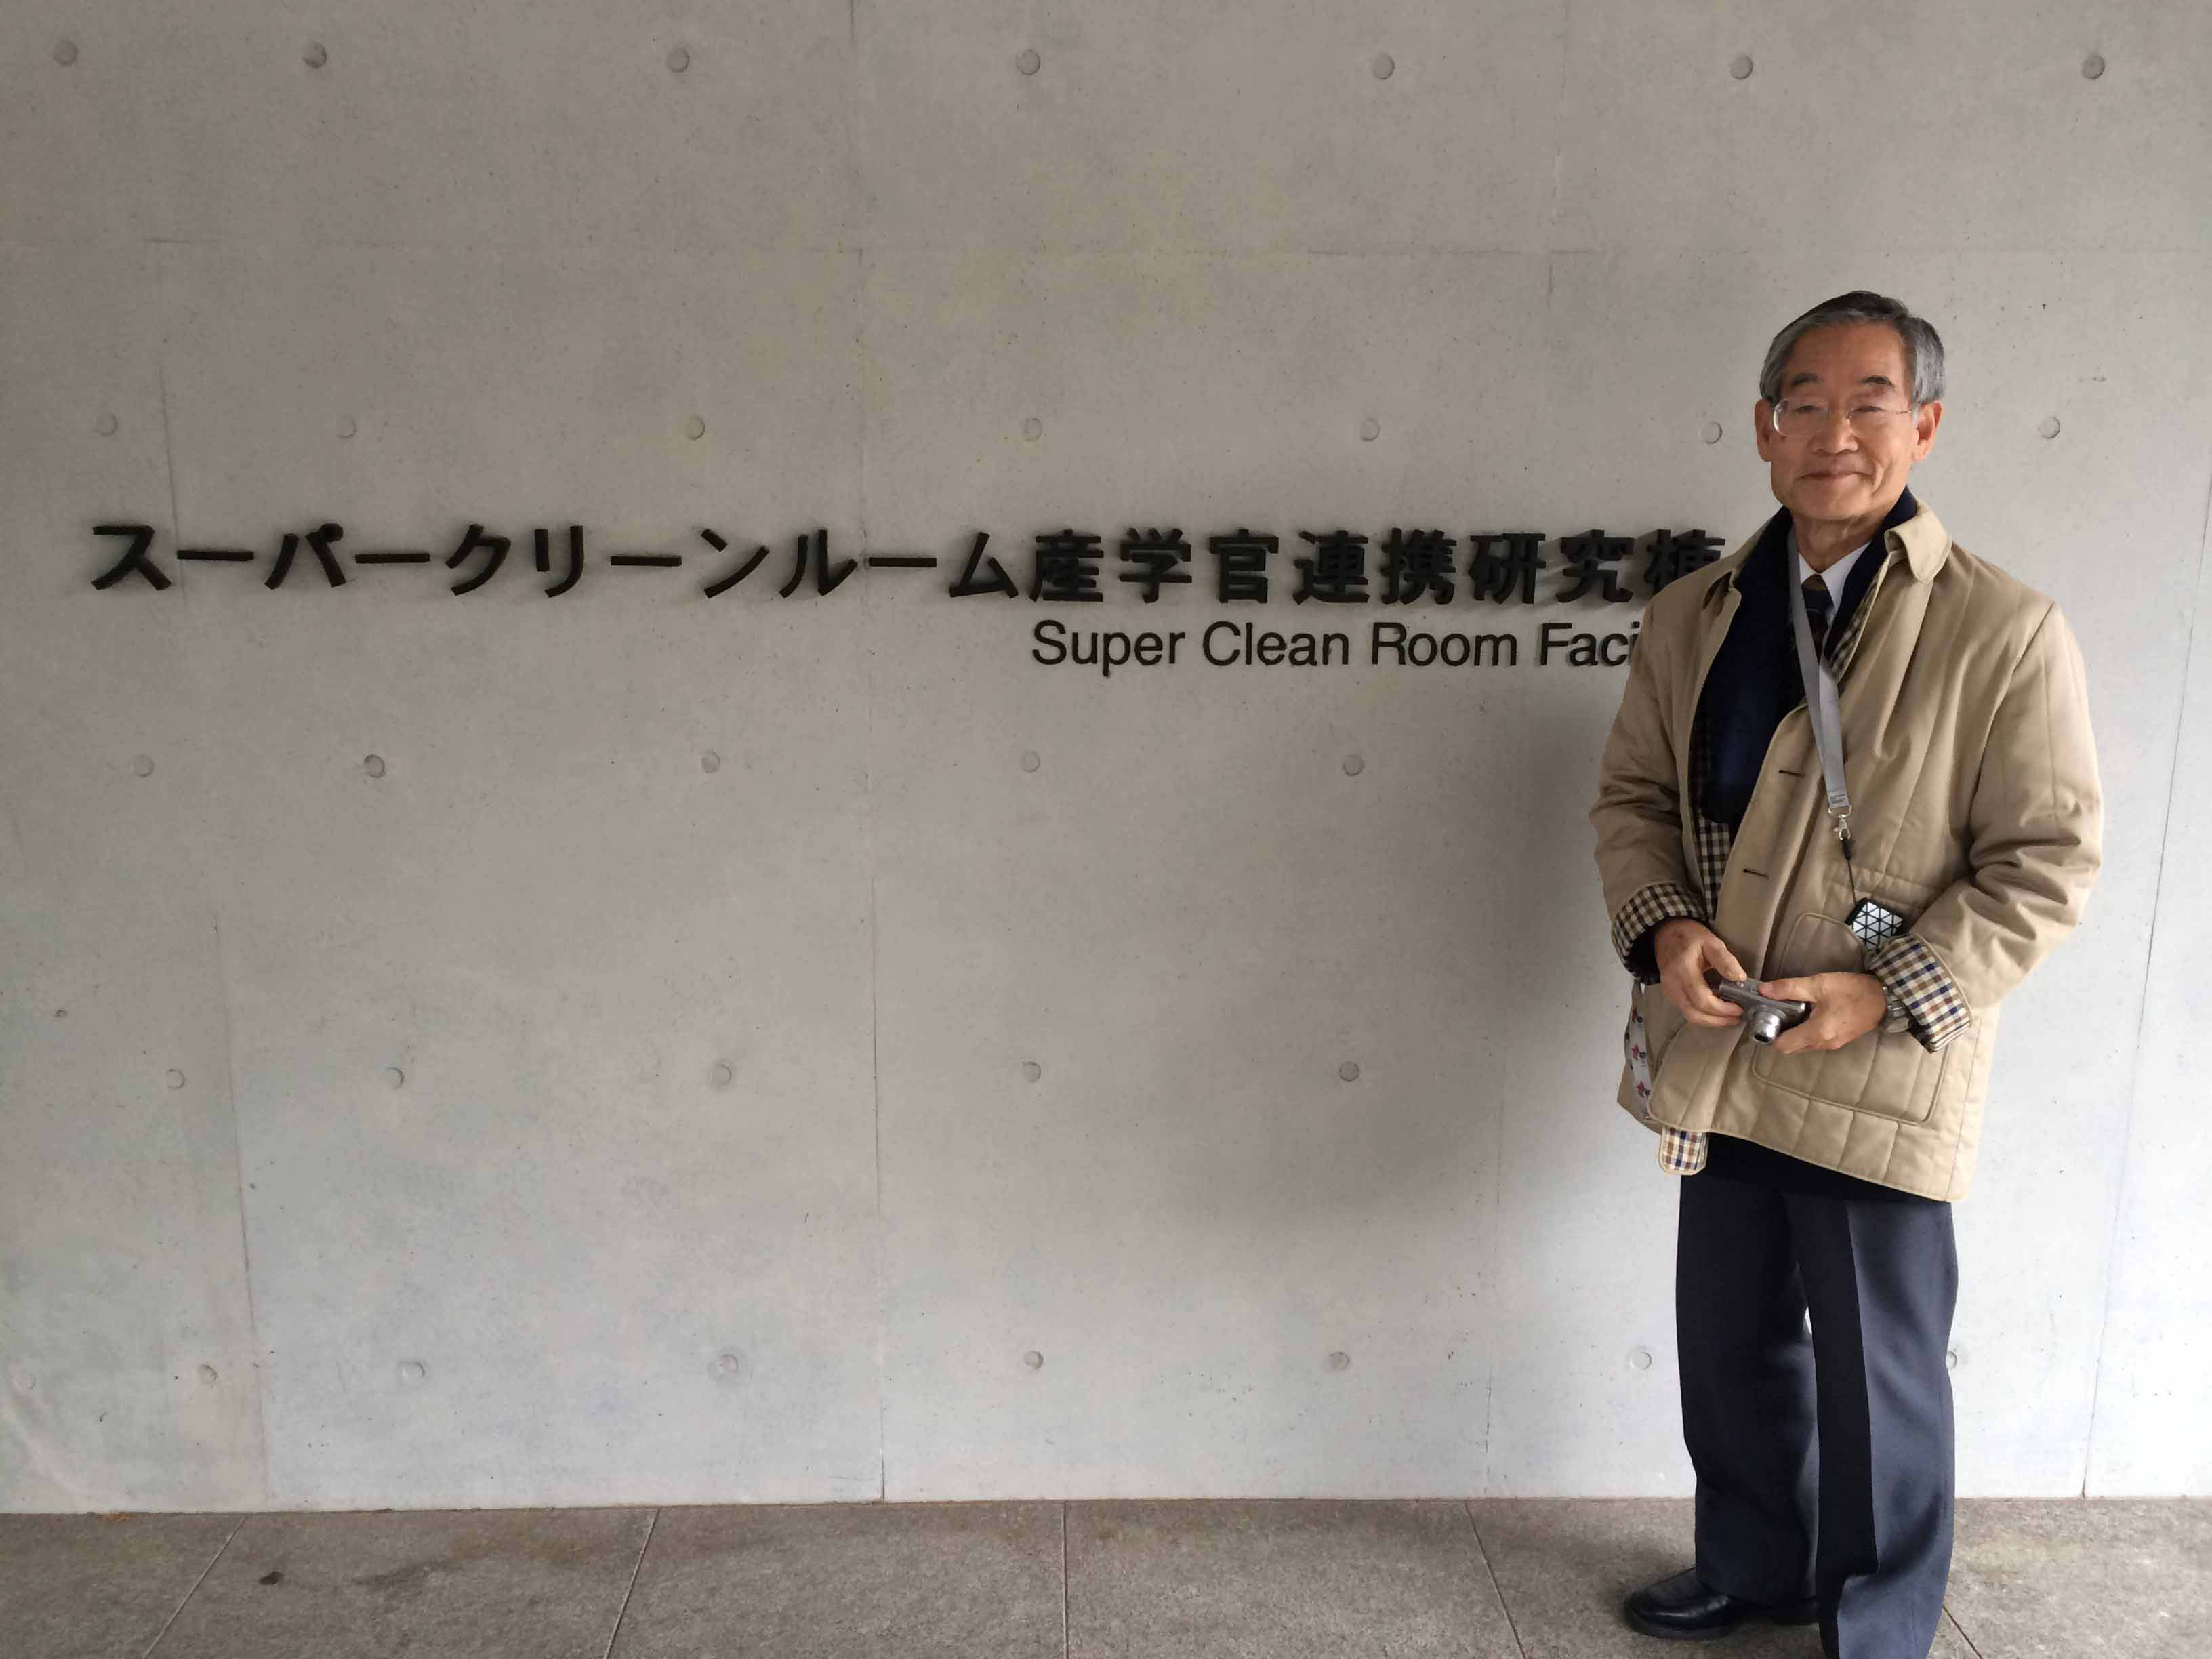 ATIP Japan's senior technology analyst, Tetsuo SATOH, visits the nanotech labs and Super Cleanroom at AIST in Tsukuba as part of our ongoing coverage of Japanese achievements in nanotechnology.